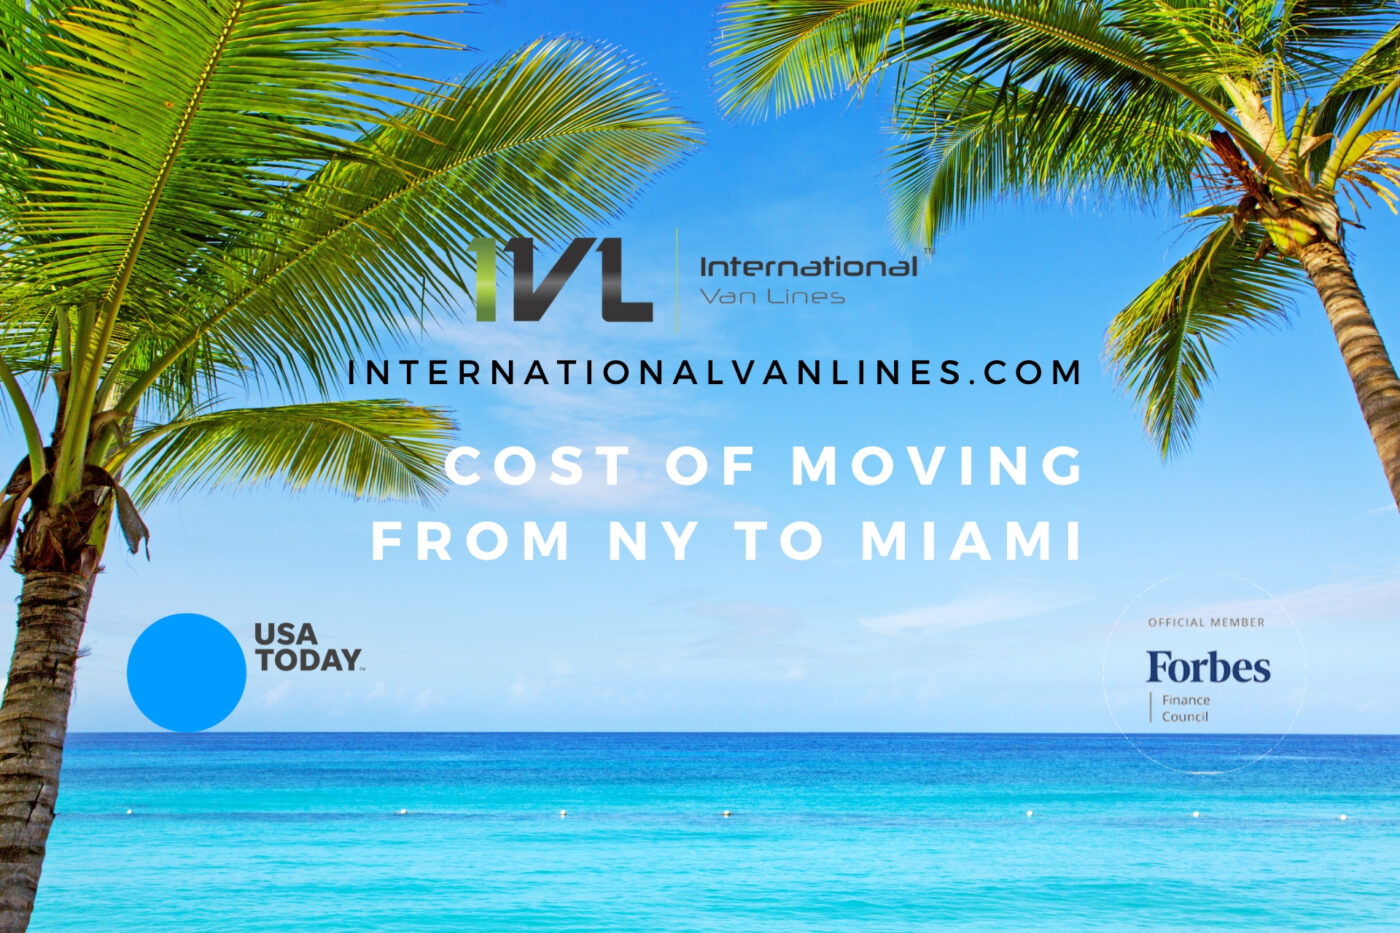 The cost of moving can vary. Florida is a beautiful place to live, especially Miami